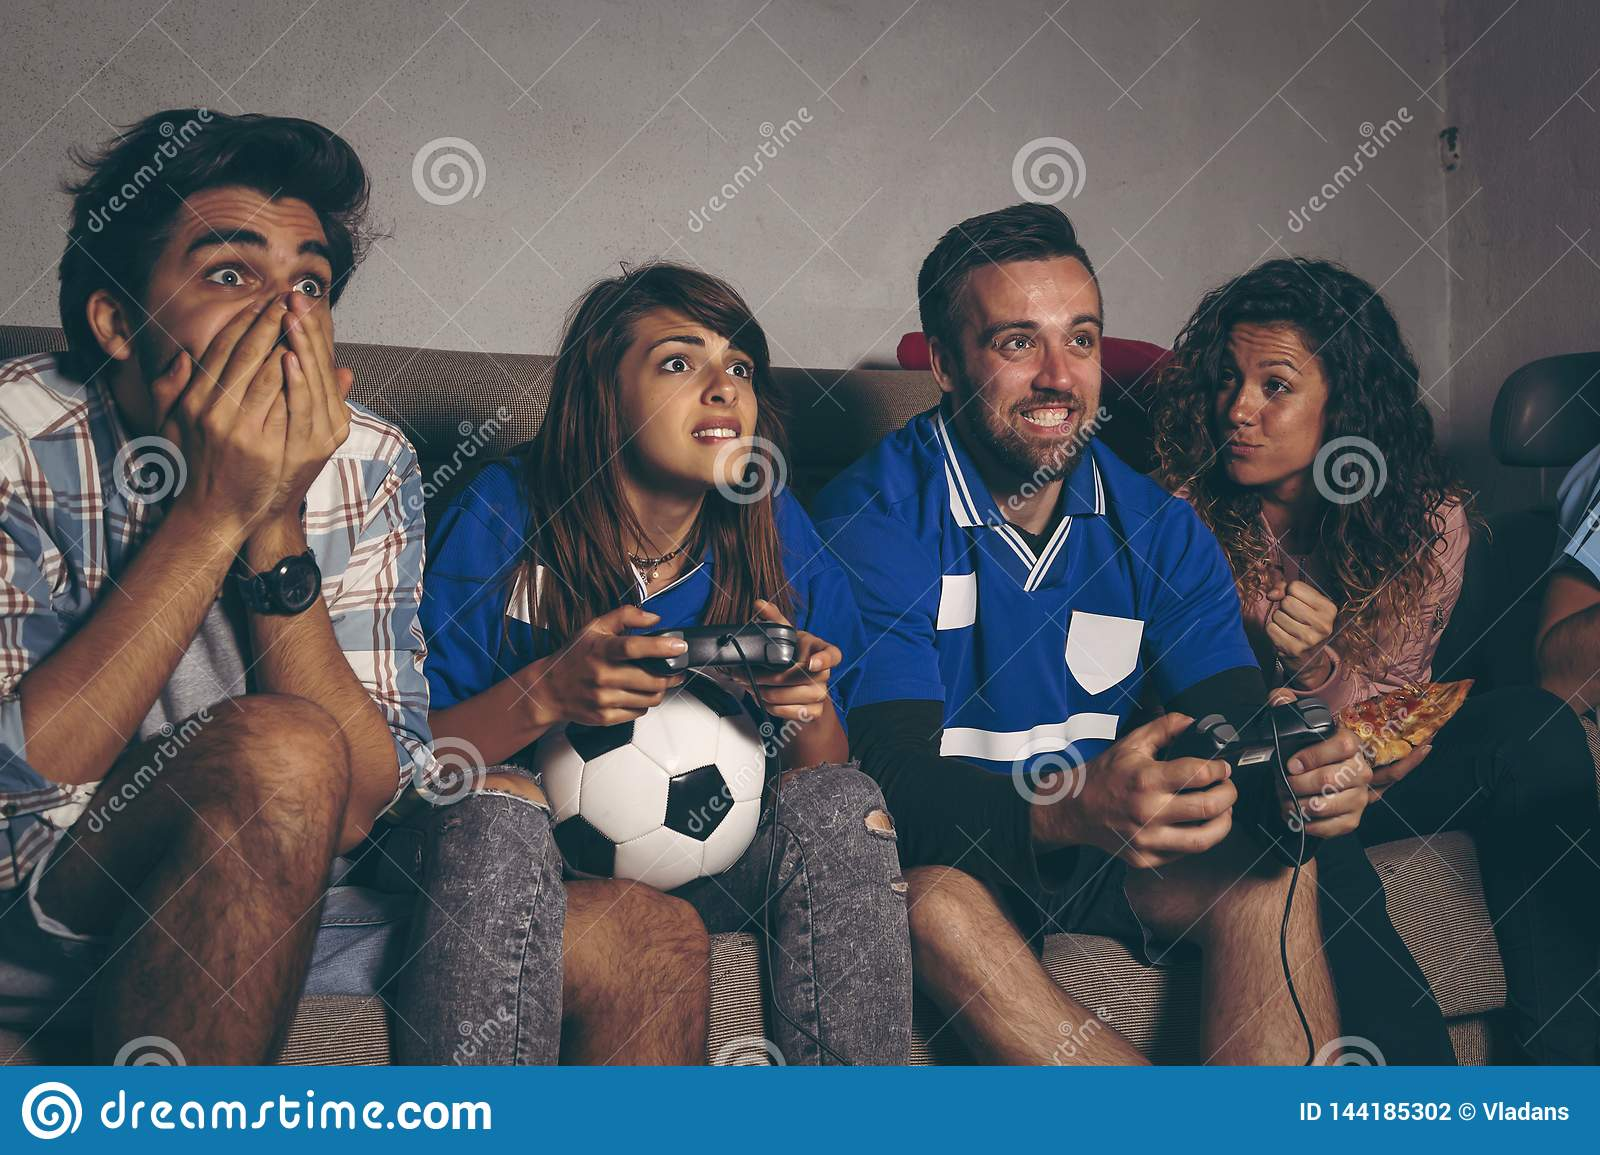 Football fans playing a football video game